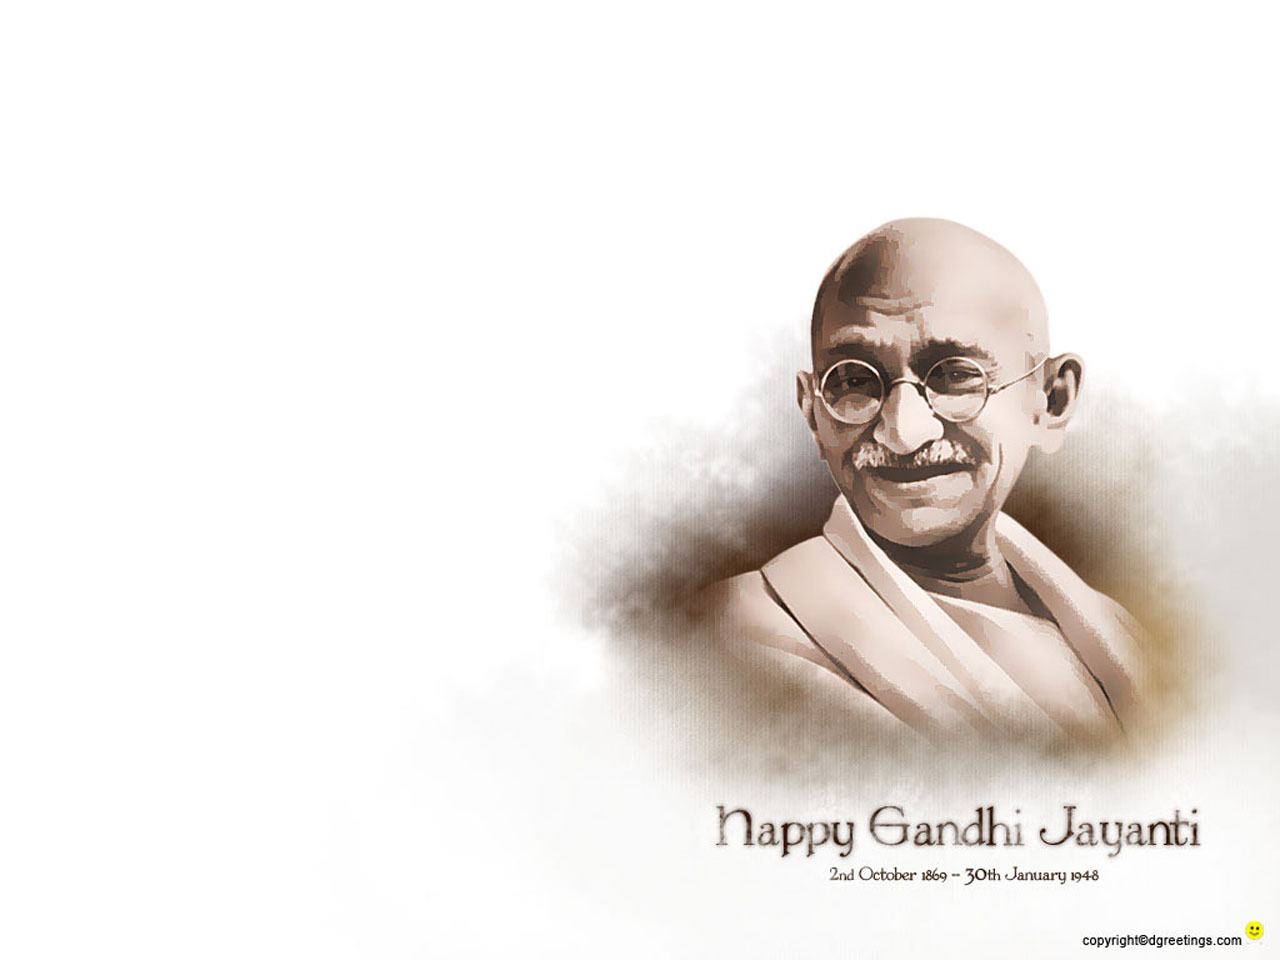 60 Best Gandhi Jayanti Wishes Pictures And Images 1280x960